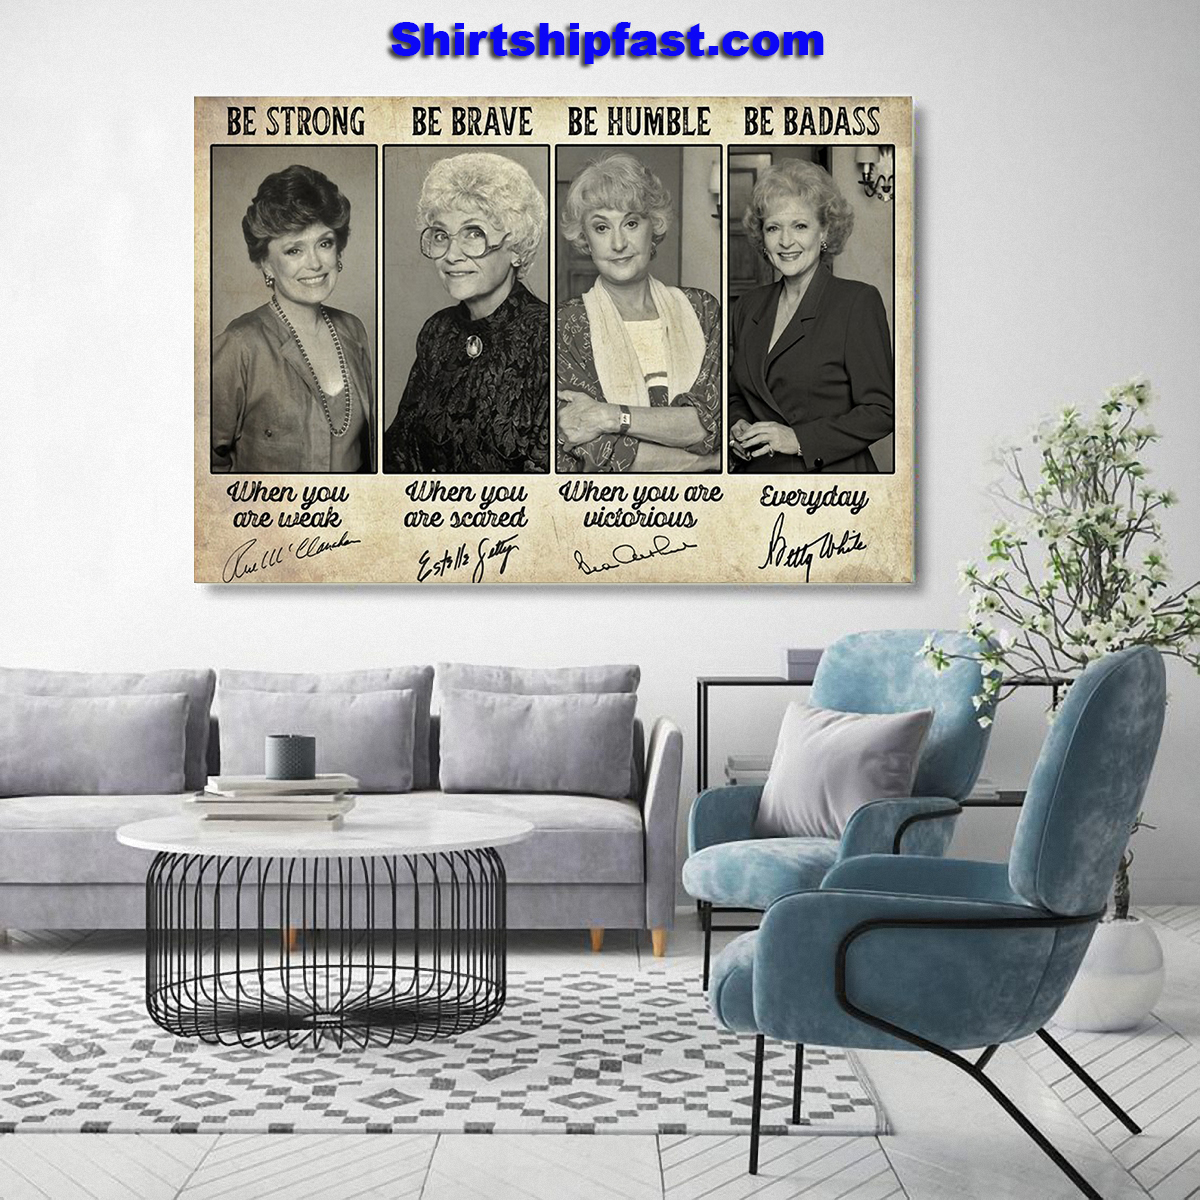 Be strong be brave be humble be badass Golden Girls signature poster - Picture 2